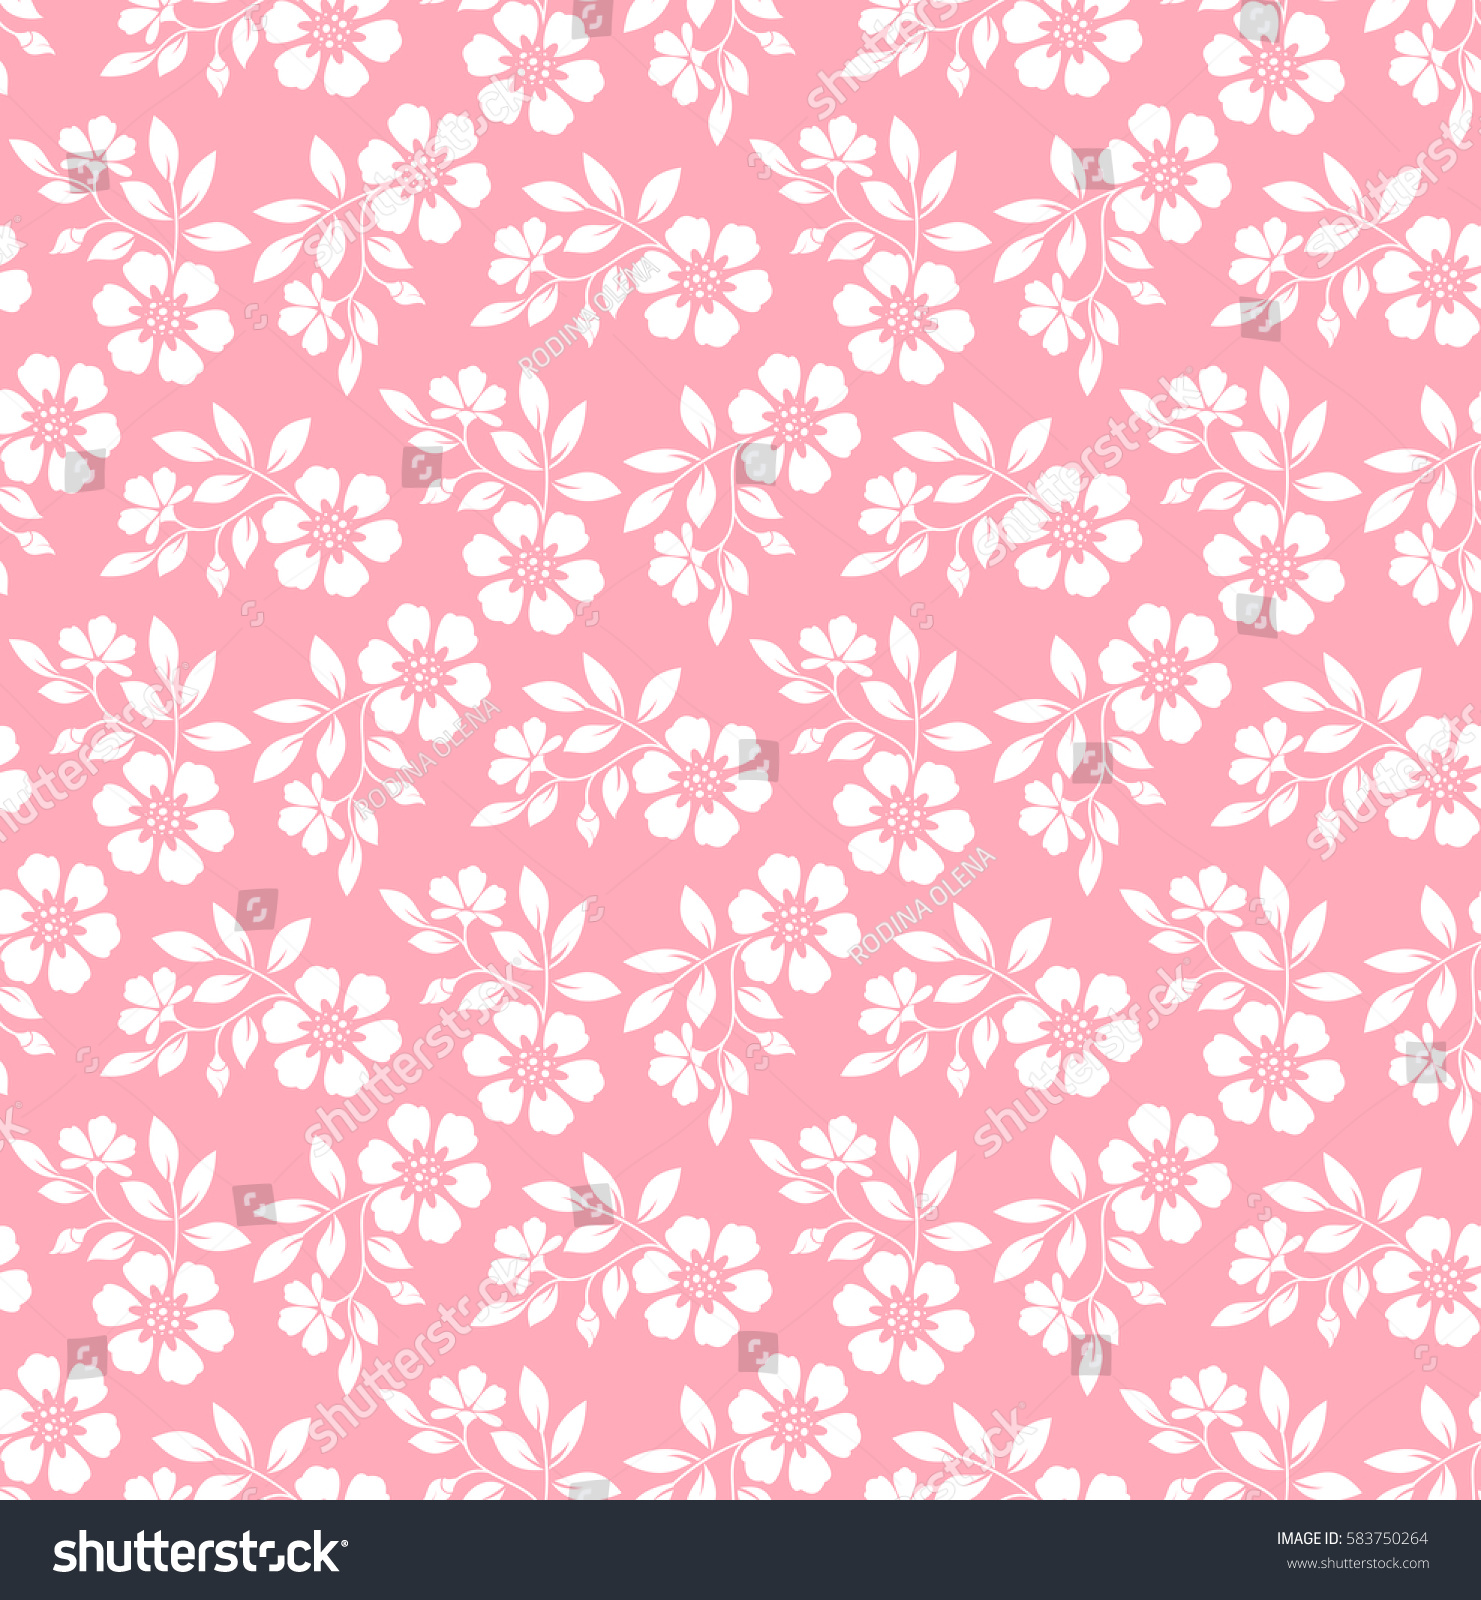 To acquire Flower Pink background pattern picture trends